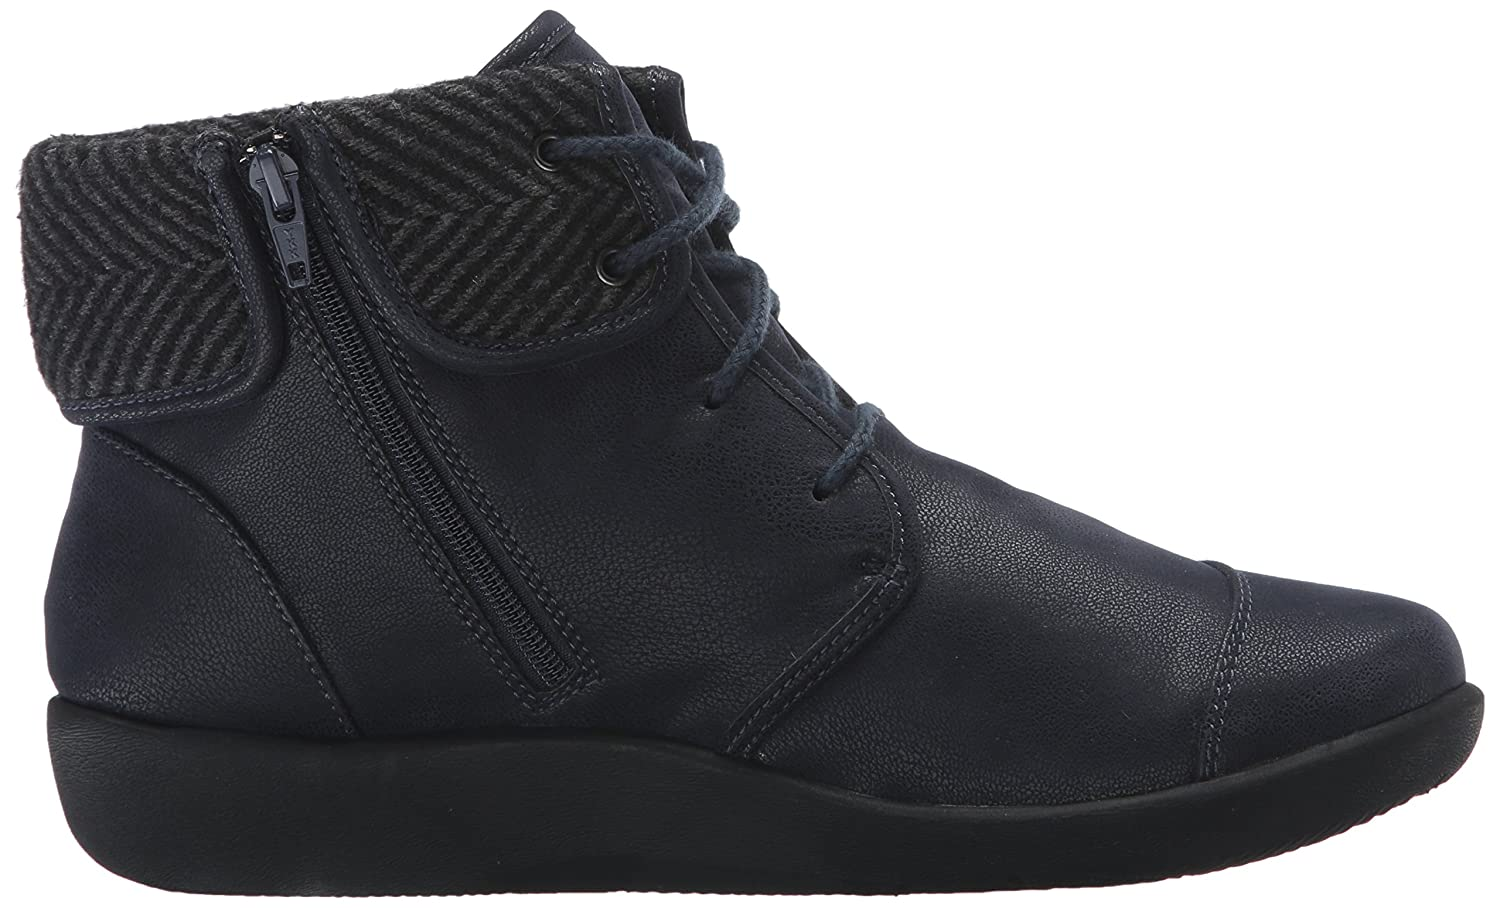 CLARKS Women's Sillian Frey Boot B0198WJB46 9.5 B(M) US|Navy Synthetic Nubuck